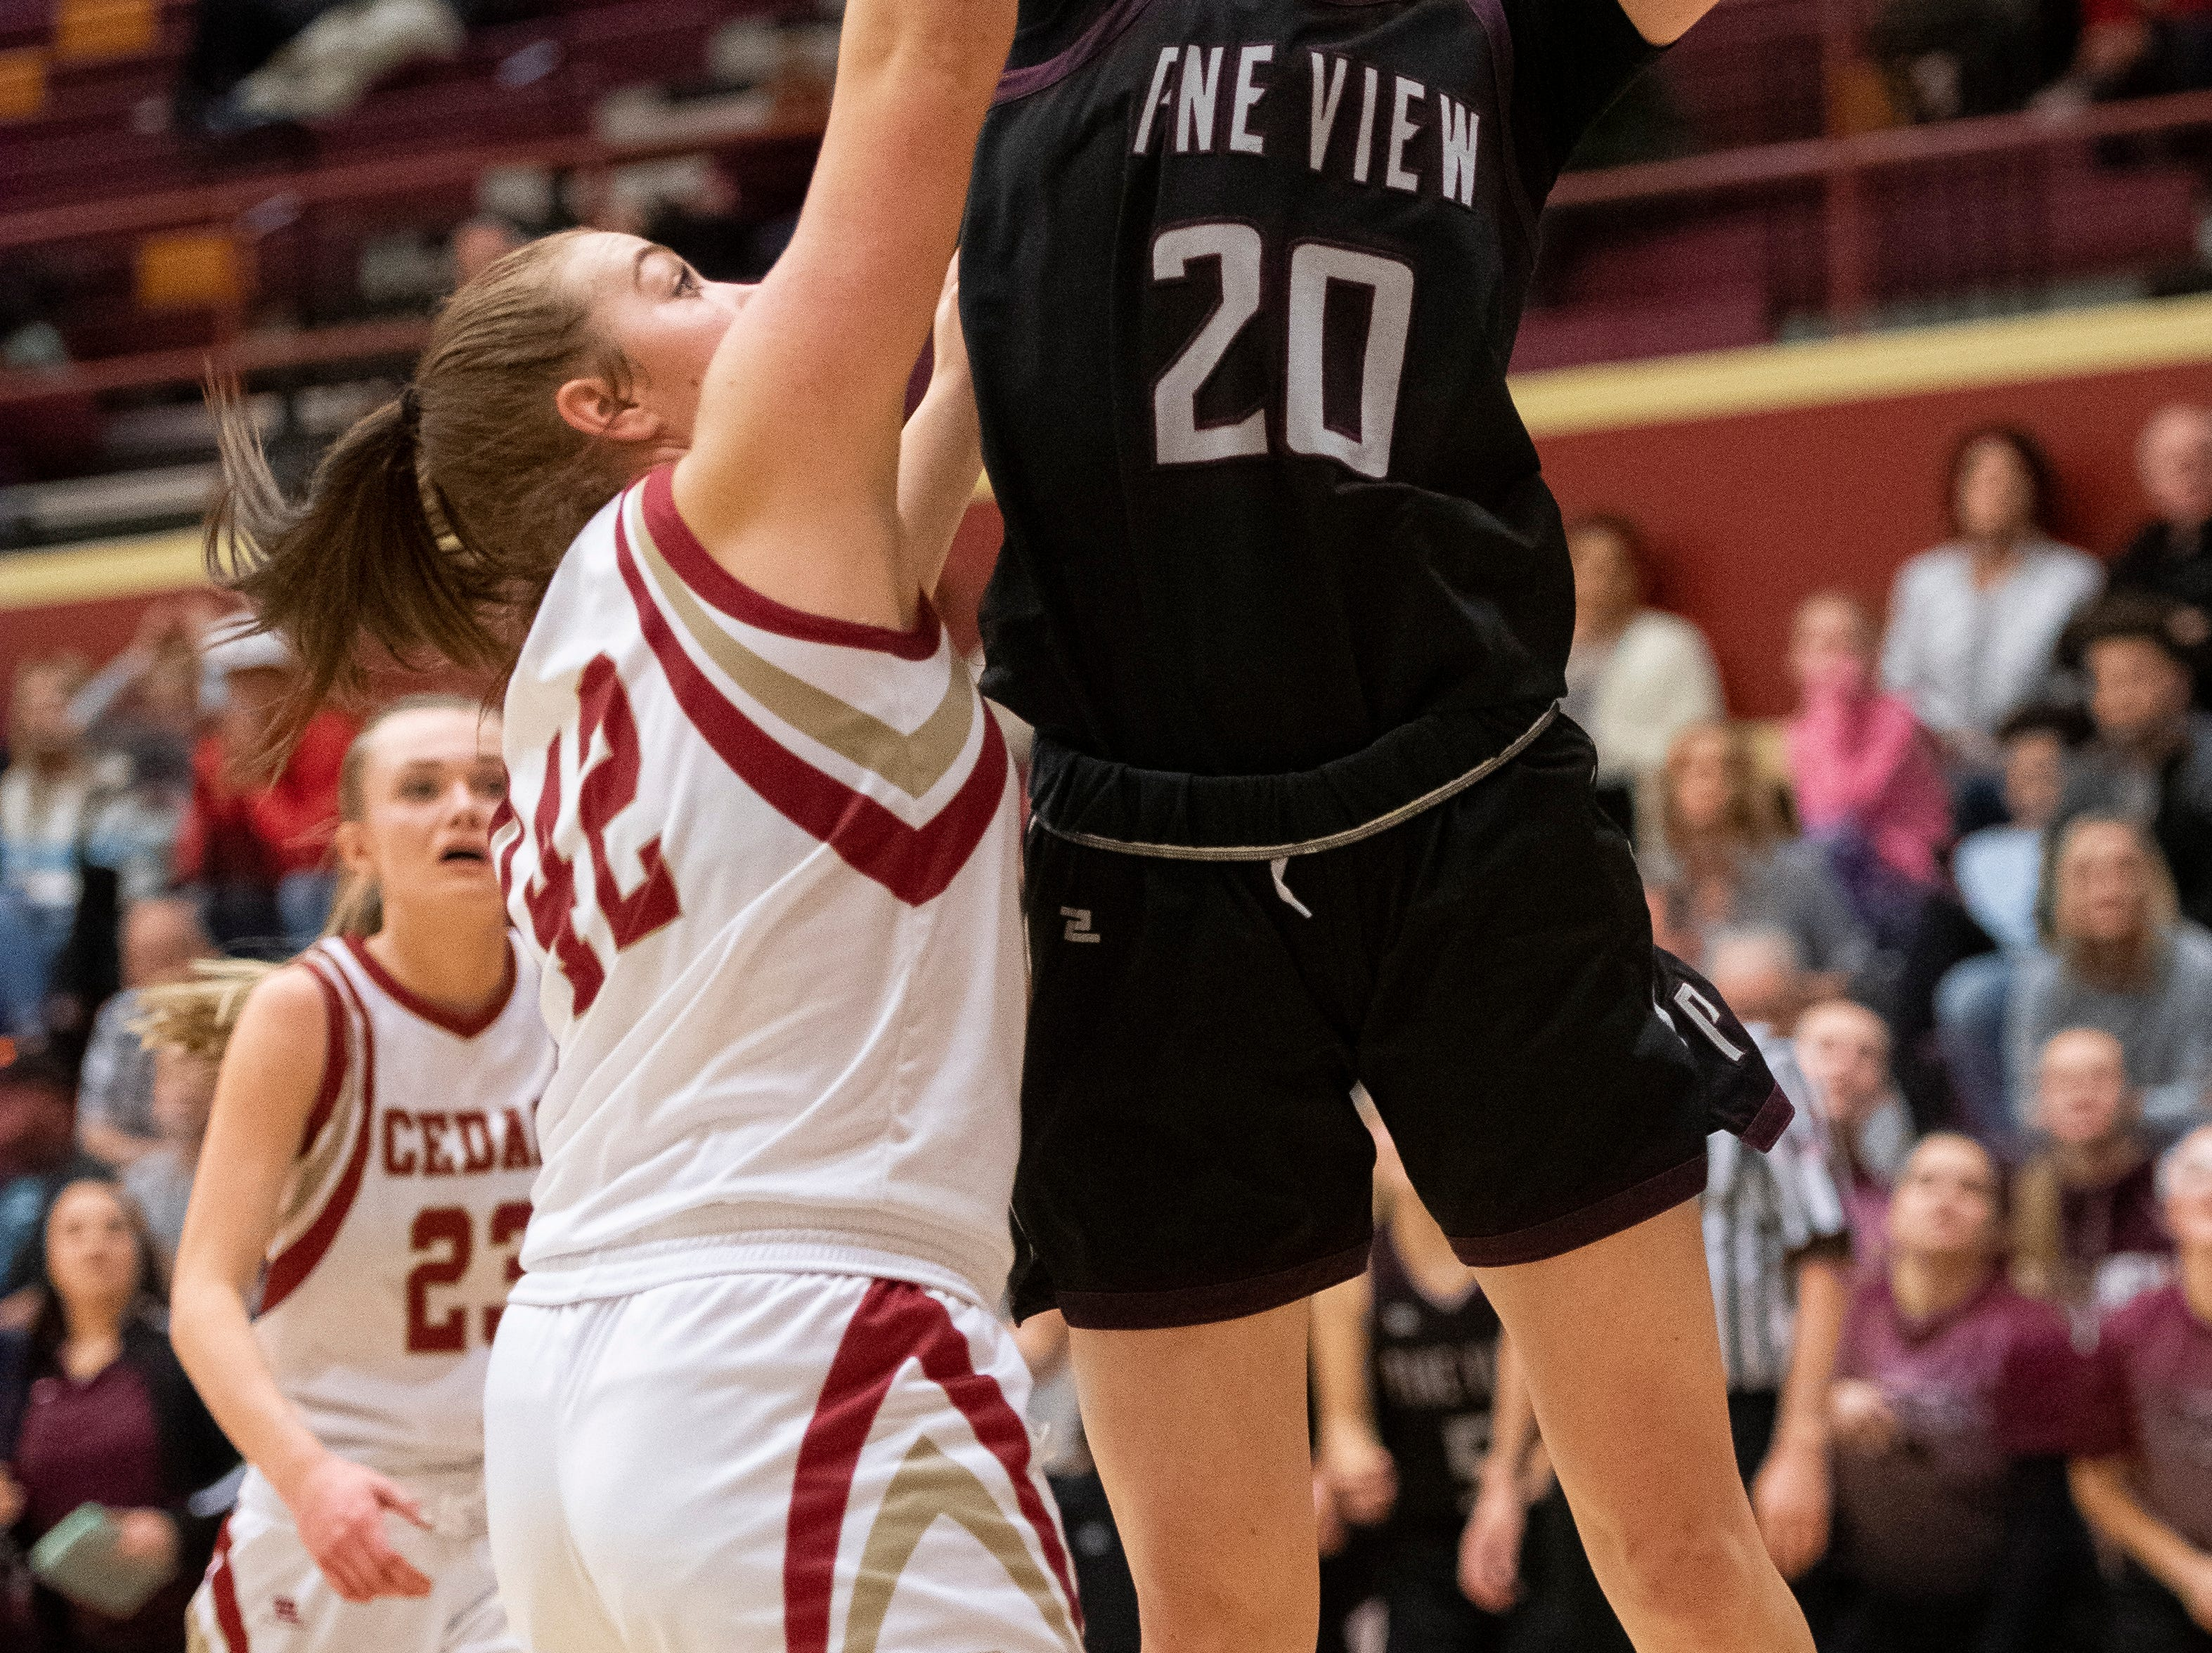 Pine View High School sophomore Averi Papa (20) shoots a basket and one against Cedar High School at CHS Tuesday, January 8, 2019. Cedar remains undefeated with a 63-40 win over the Panthers.